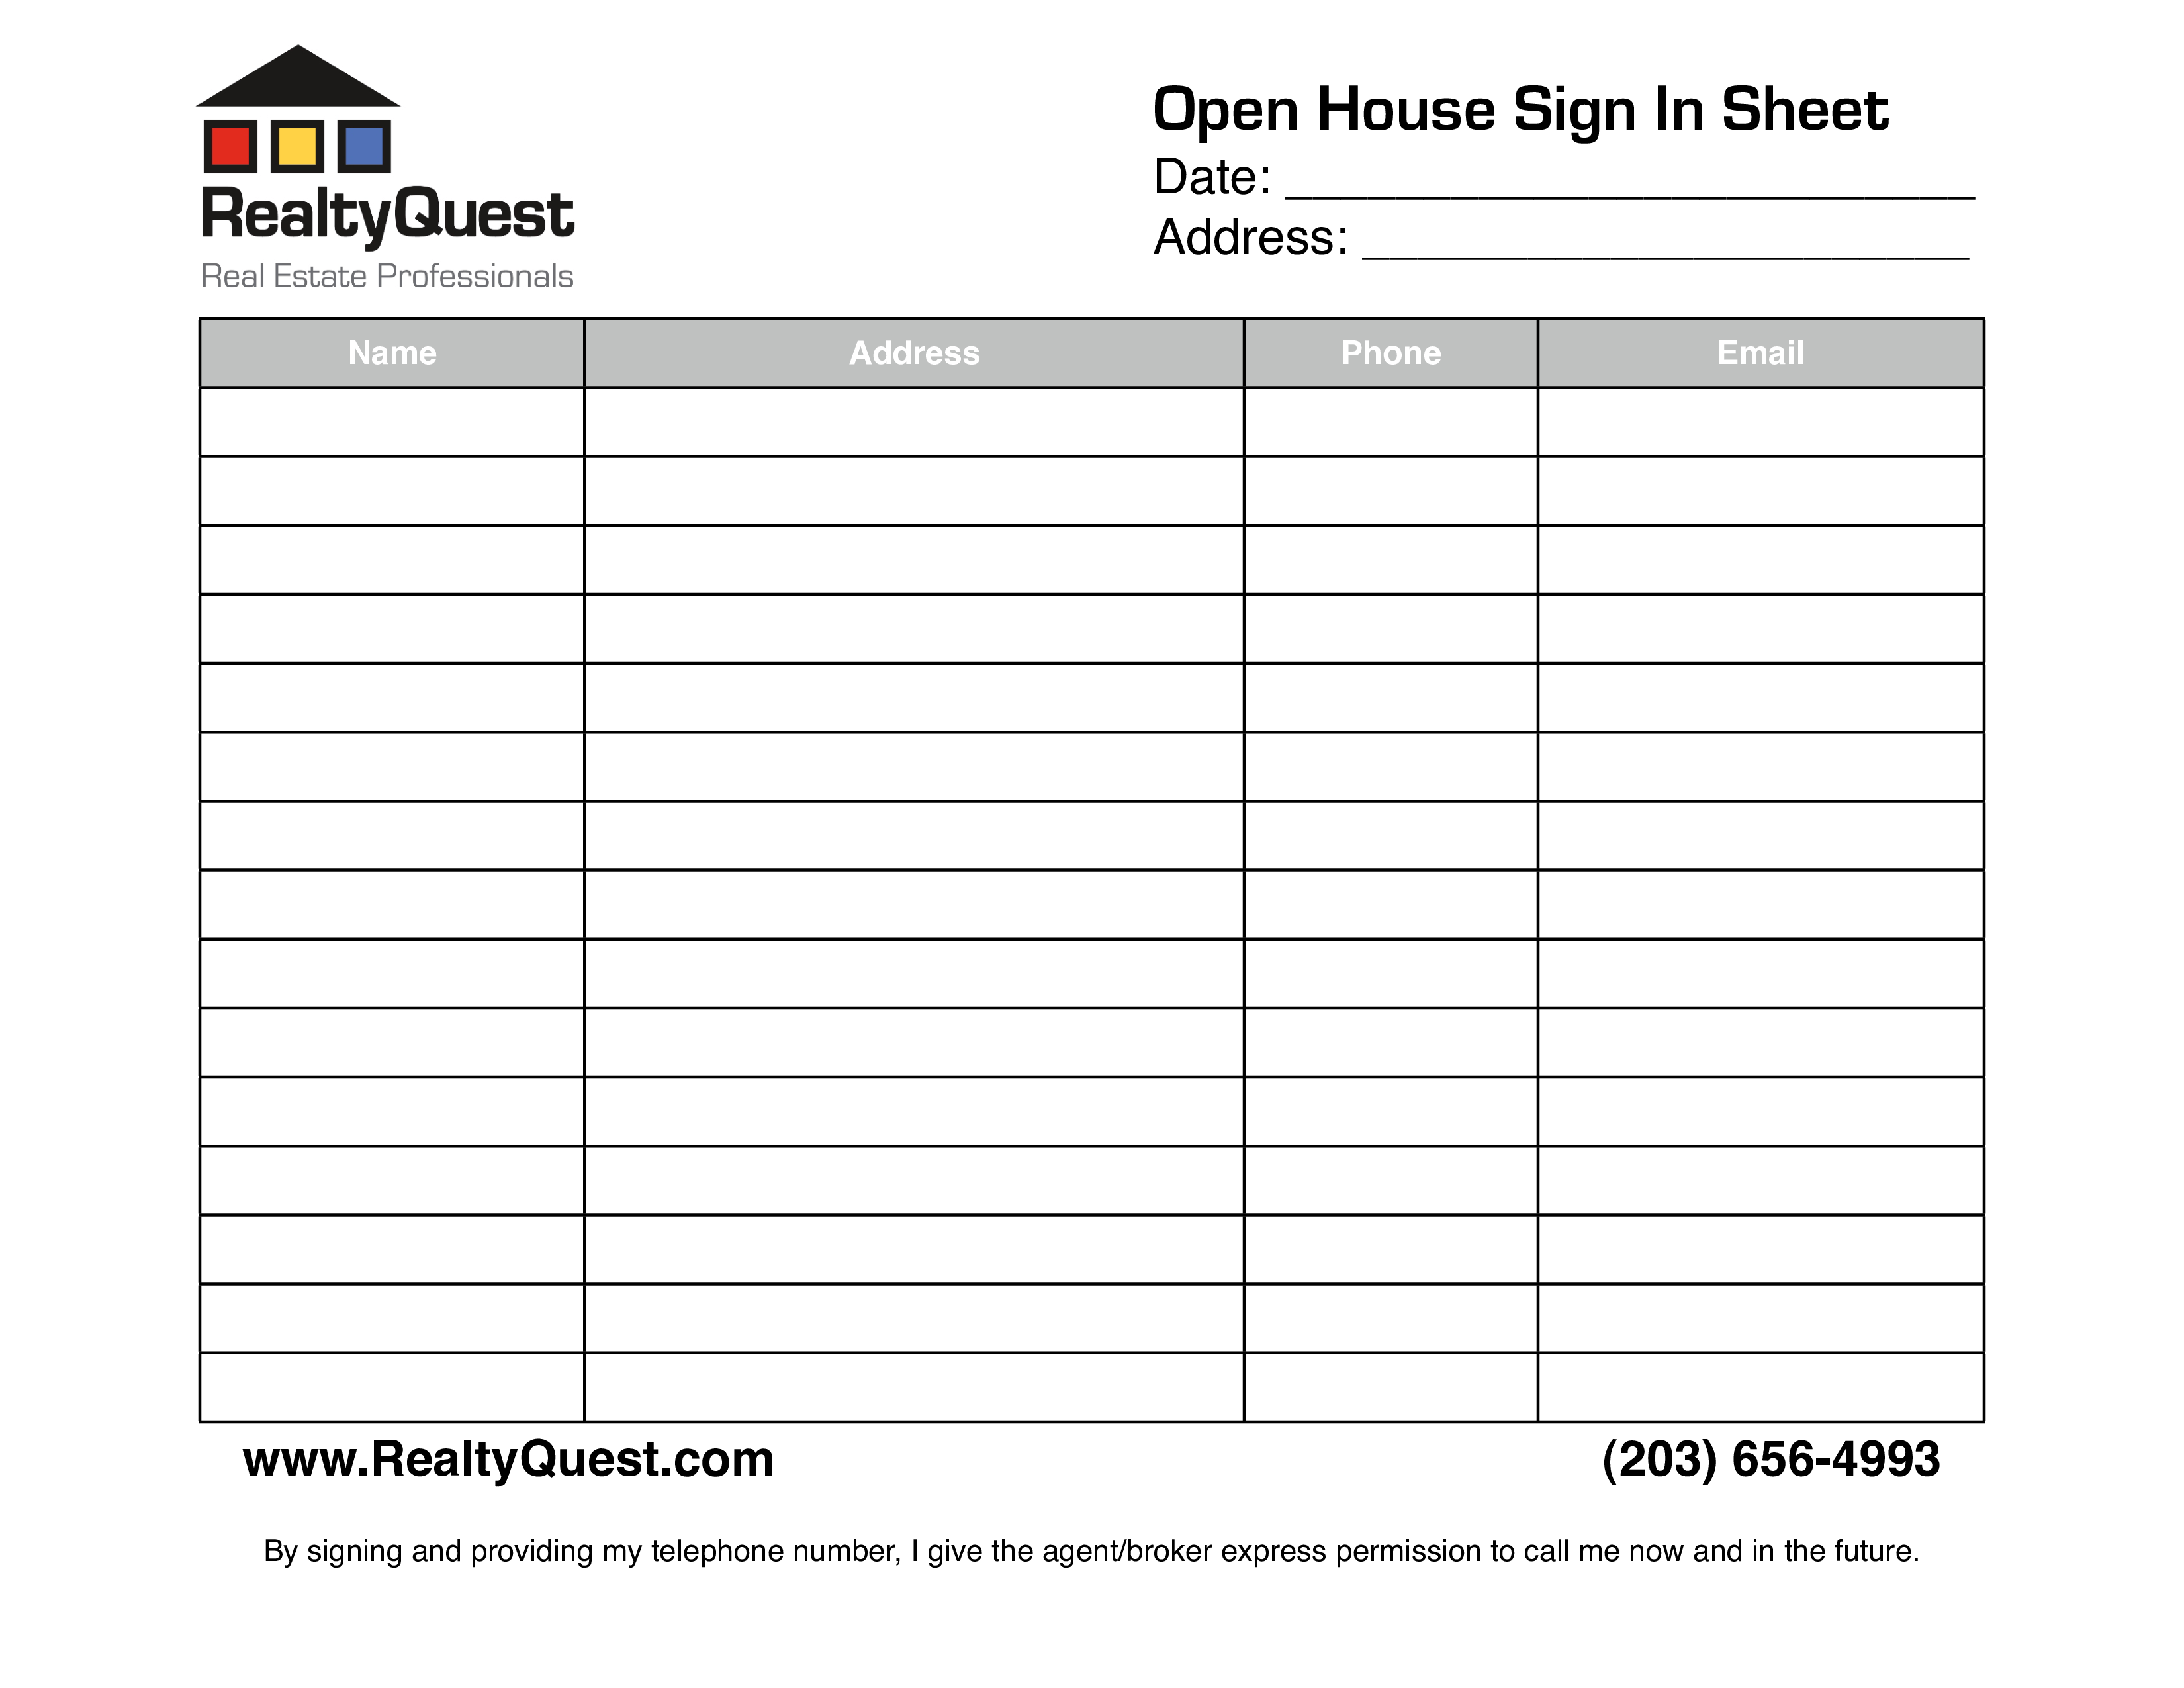 Free Real Estate Open House Sign In Sheet